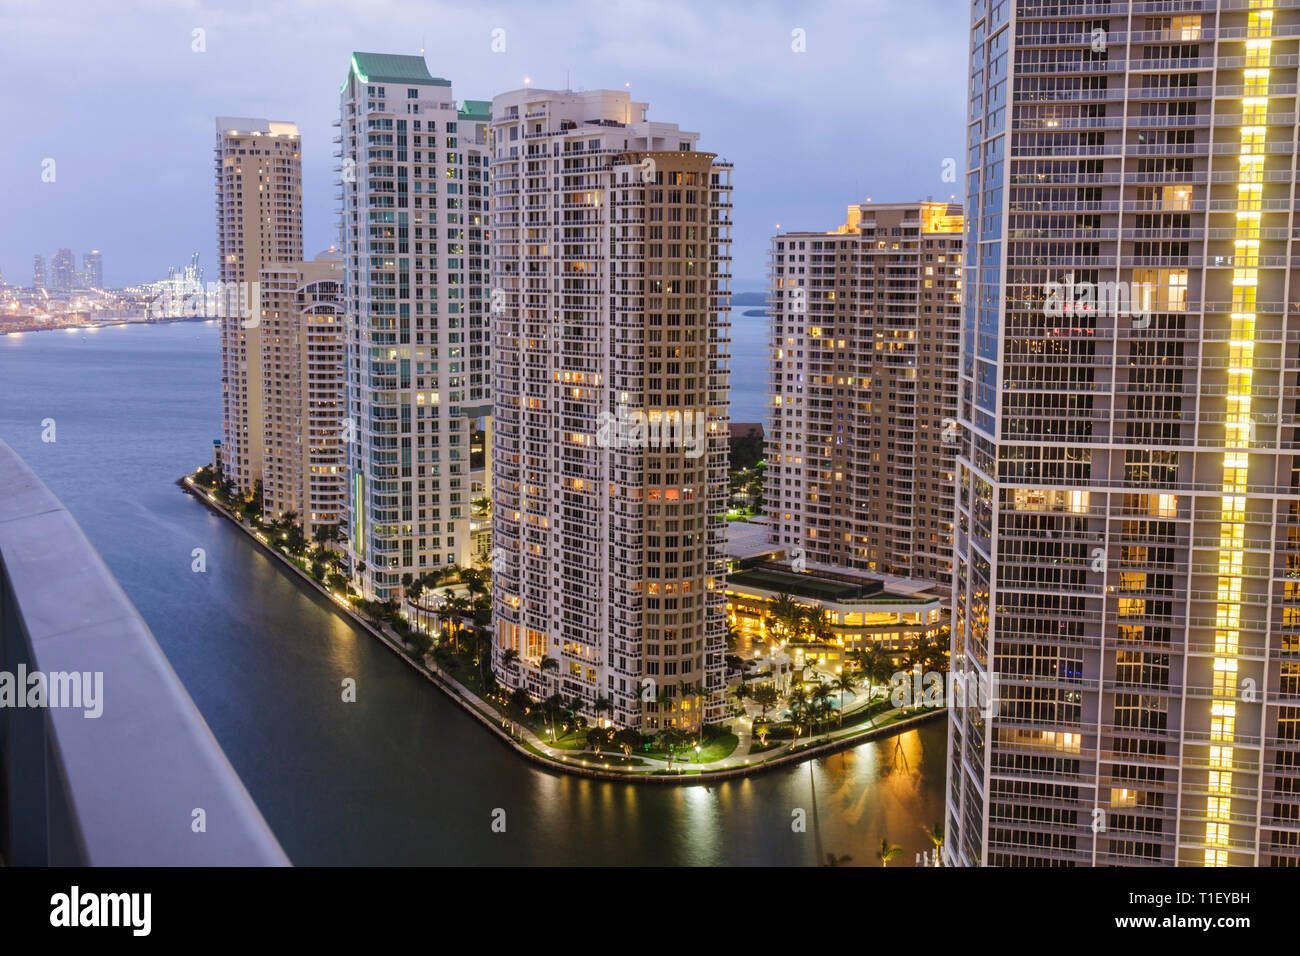 Florida, FL, South, Miami, Brickell Key, view from Epic, hotel hotels lodging inn motel motels, real estate, buildings, city skyline cityscape, condom Stock Photo